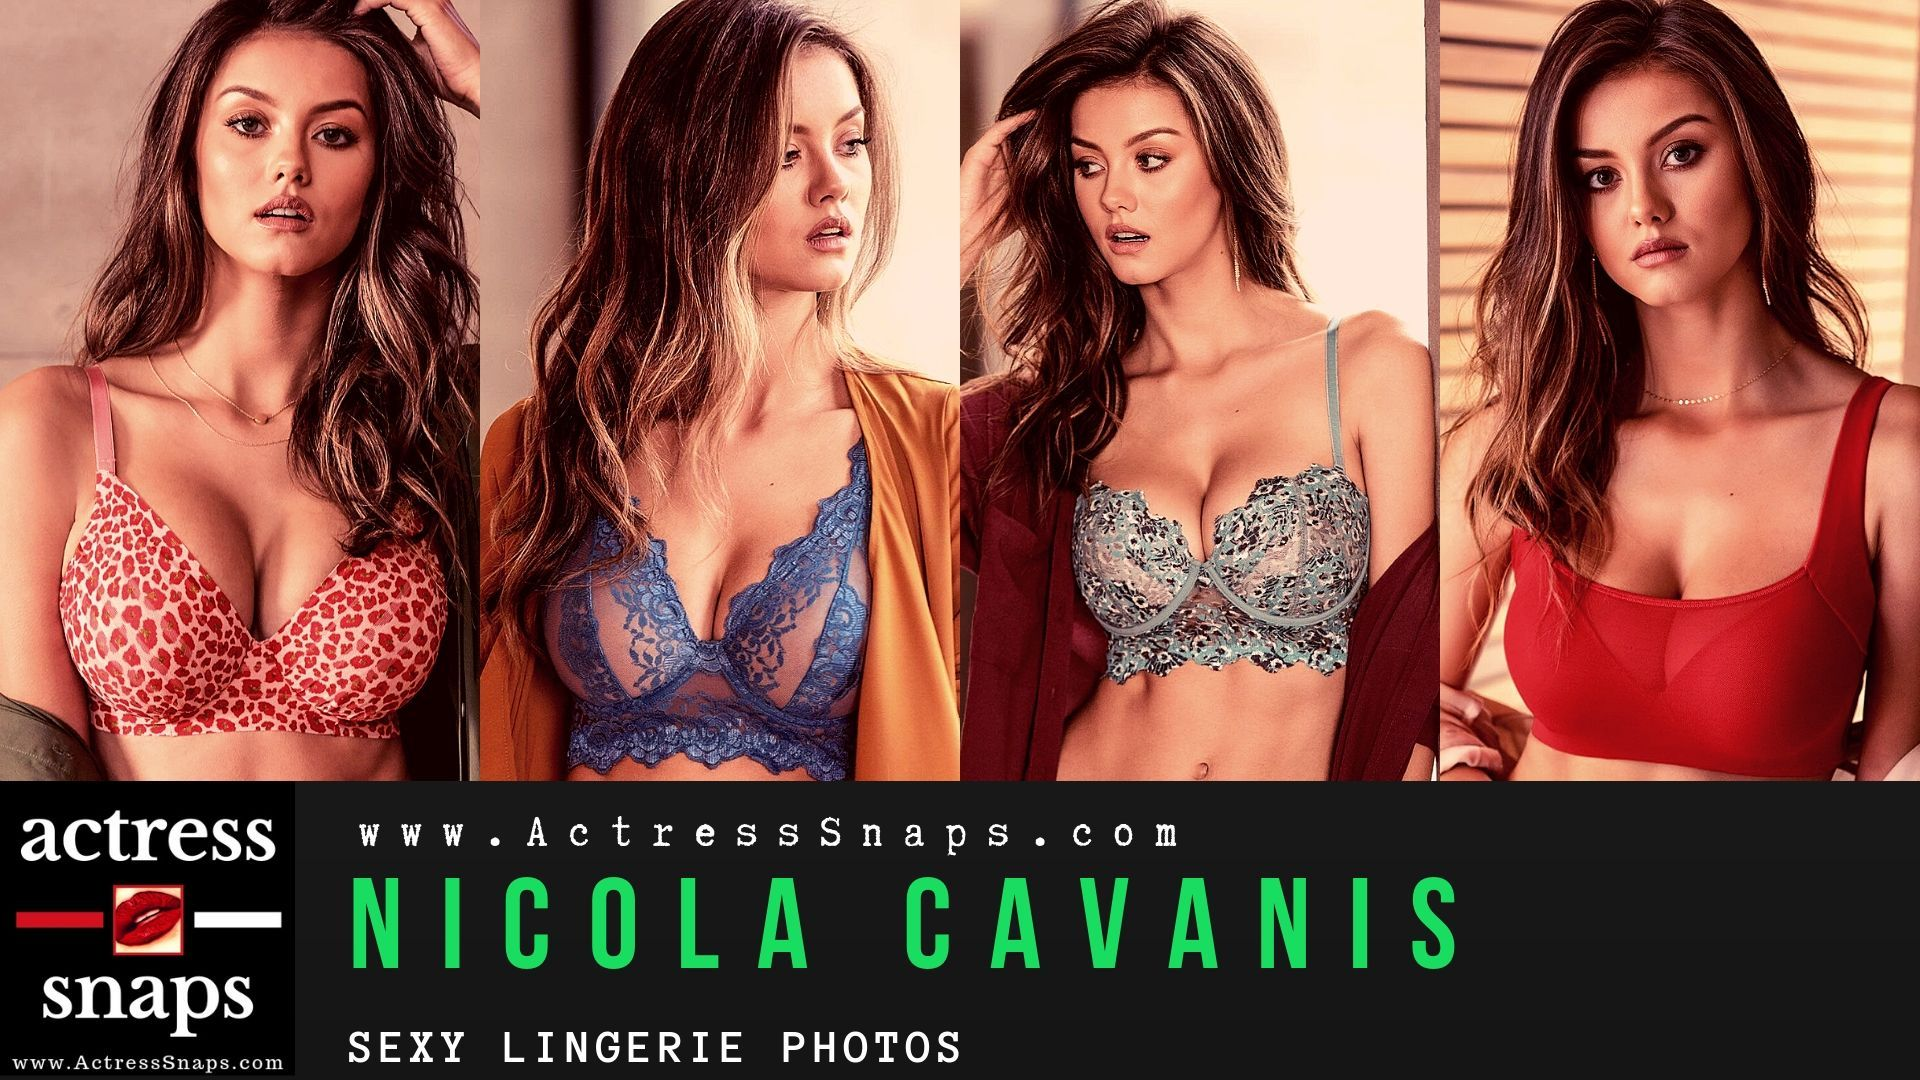 Nicola Cavanis - Lingerie Photoshoot - Sexy Actress Pictures | Hot Actress Pictures - ActressSnaps.com